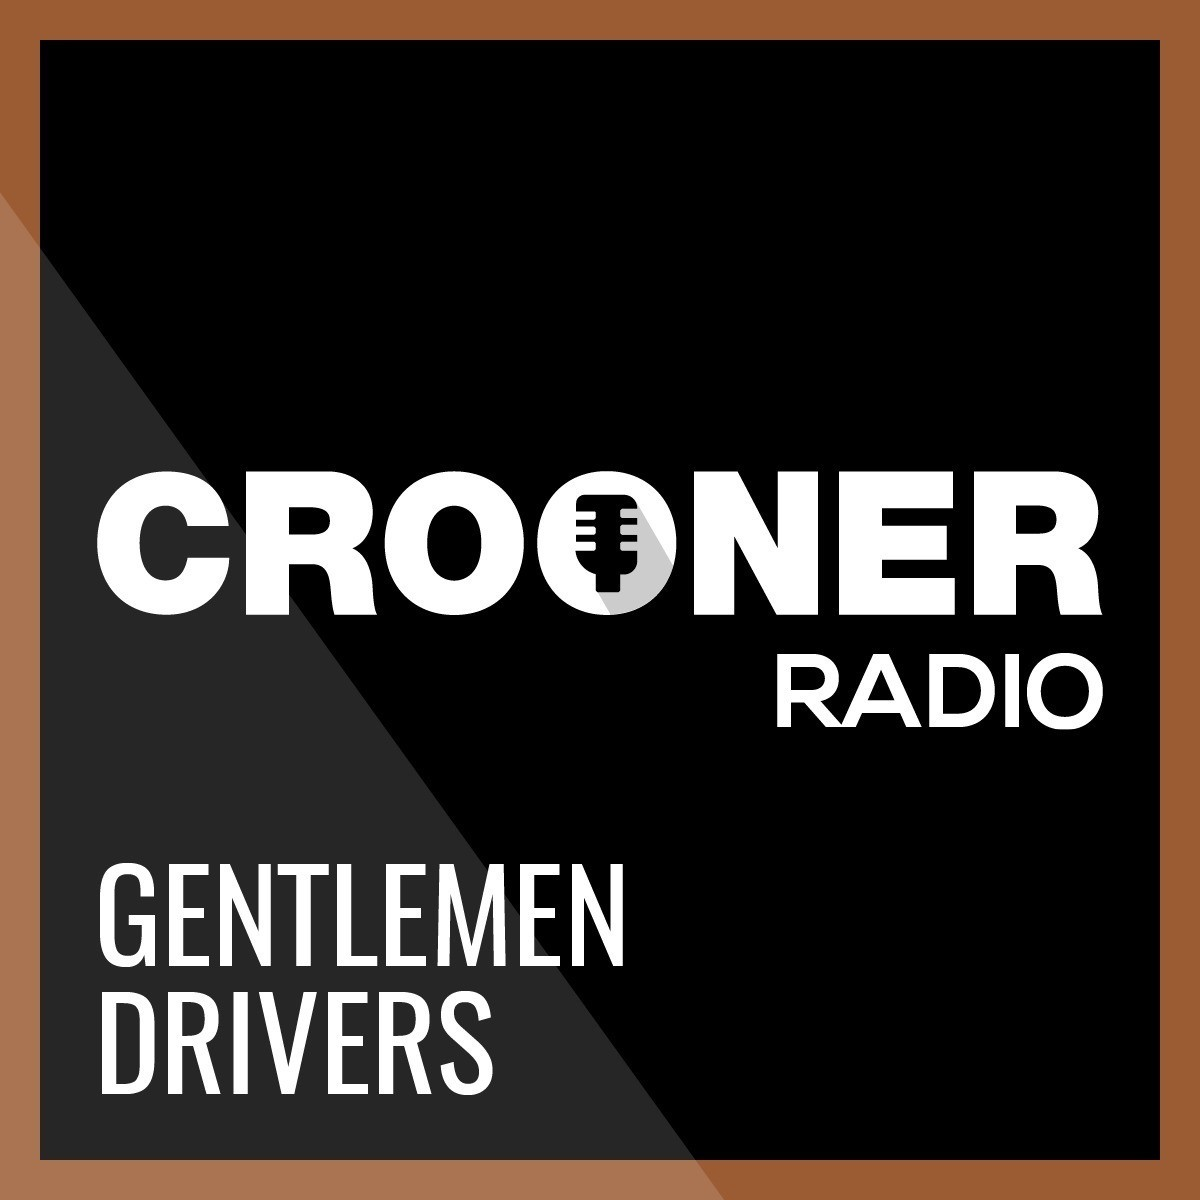 Crooner Radio Gentlemen Driver